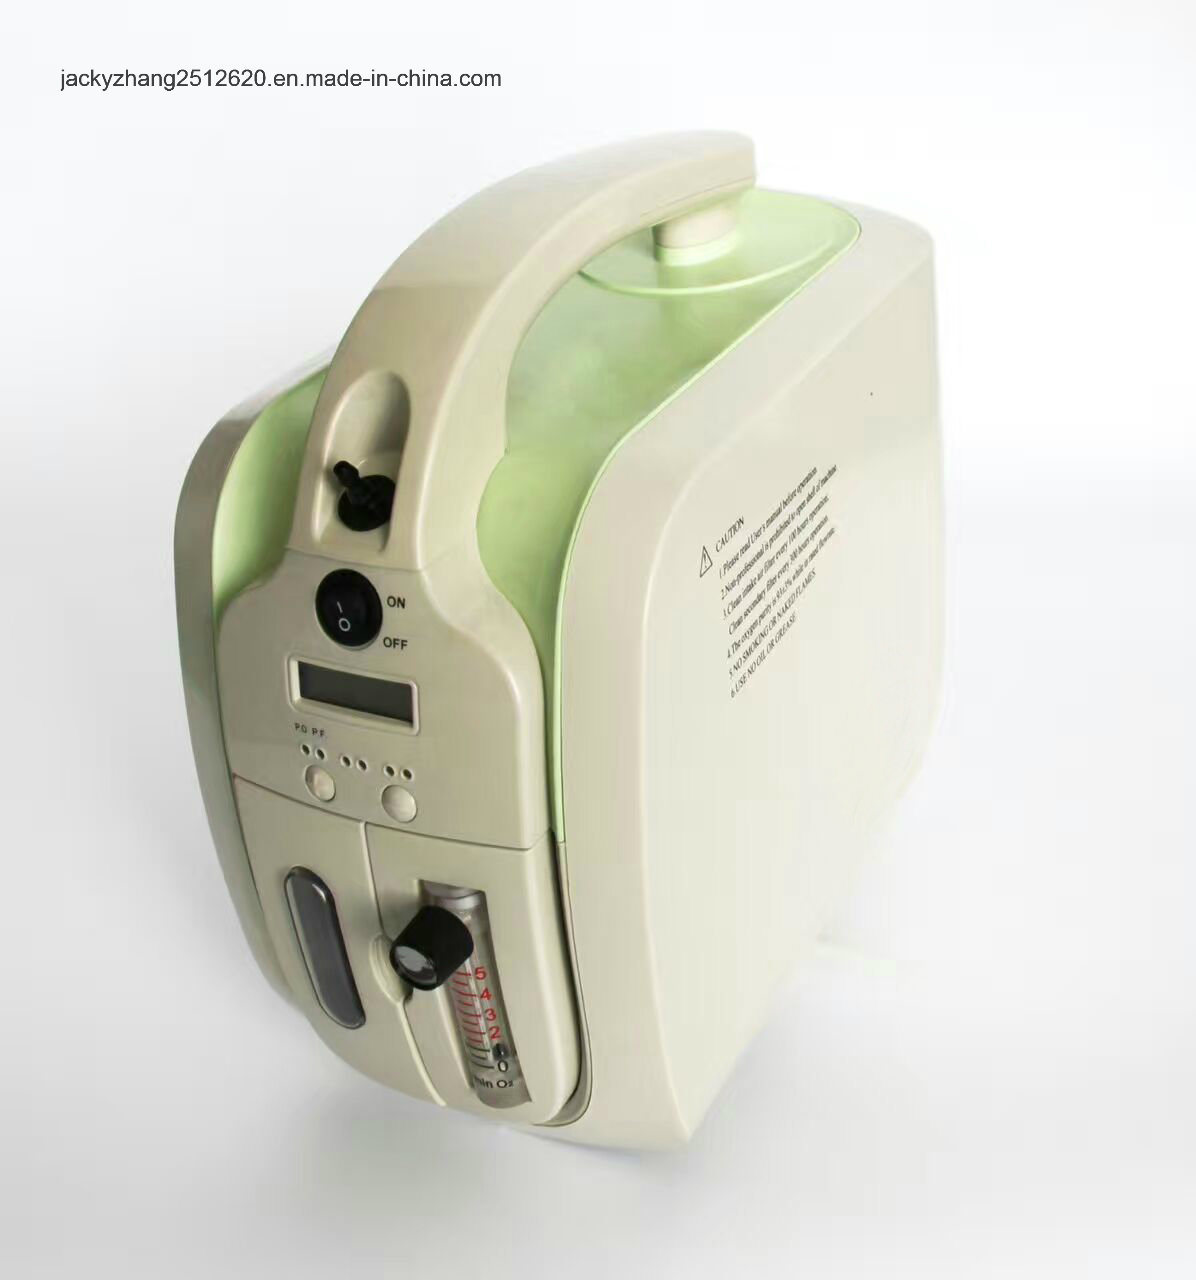 Brotie Portable Oxygen Concentrator